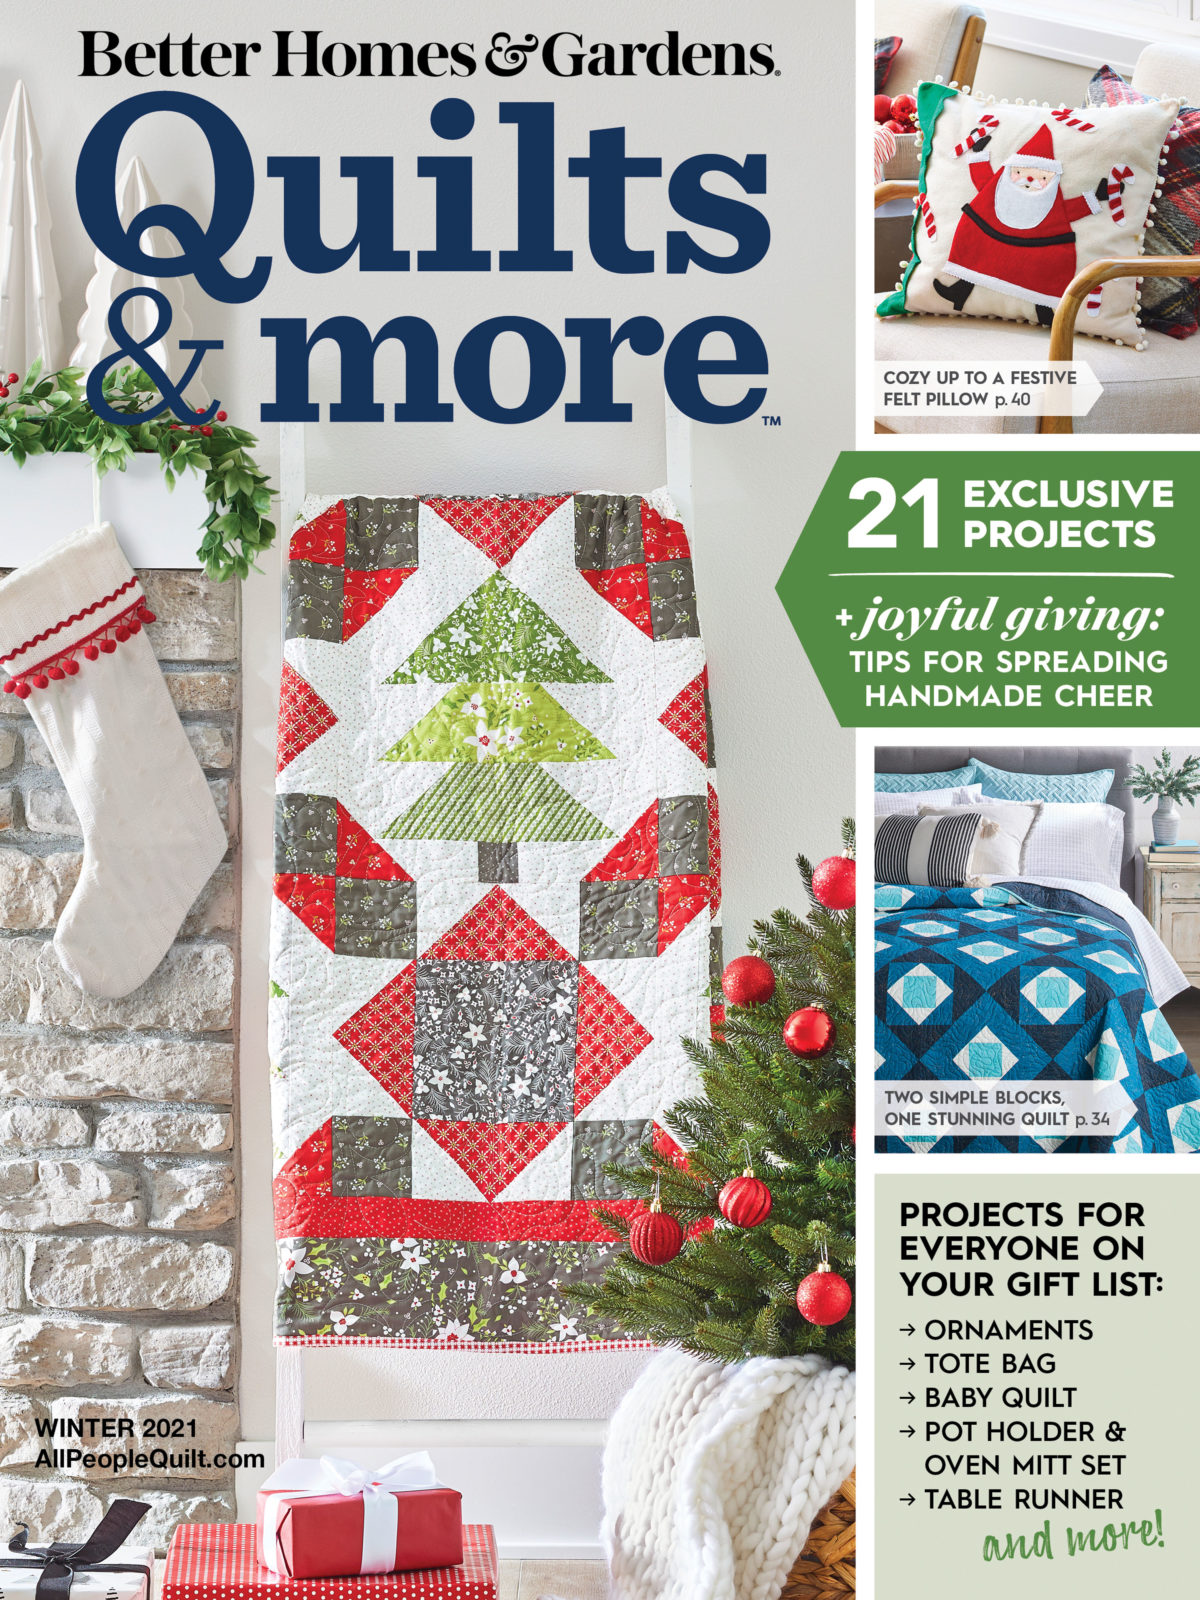 Winter Frost Quilt, Quilts & More Magazine Cover Winter 2021 Issue